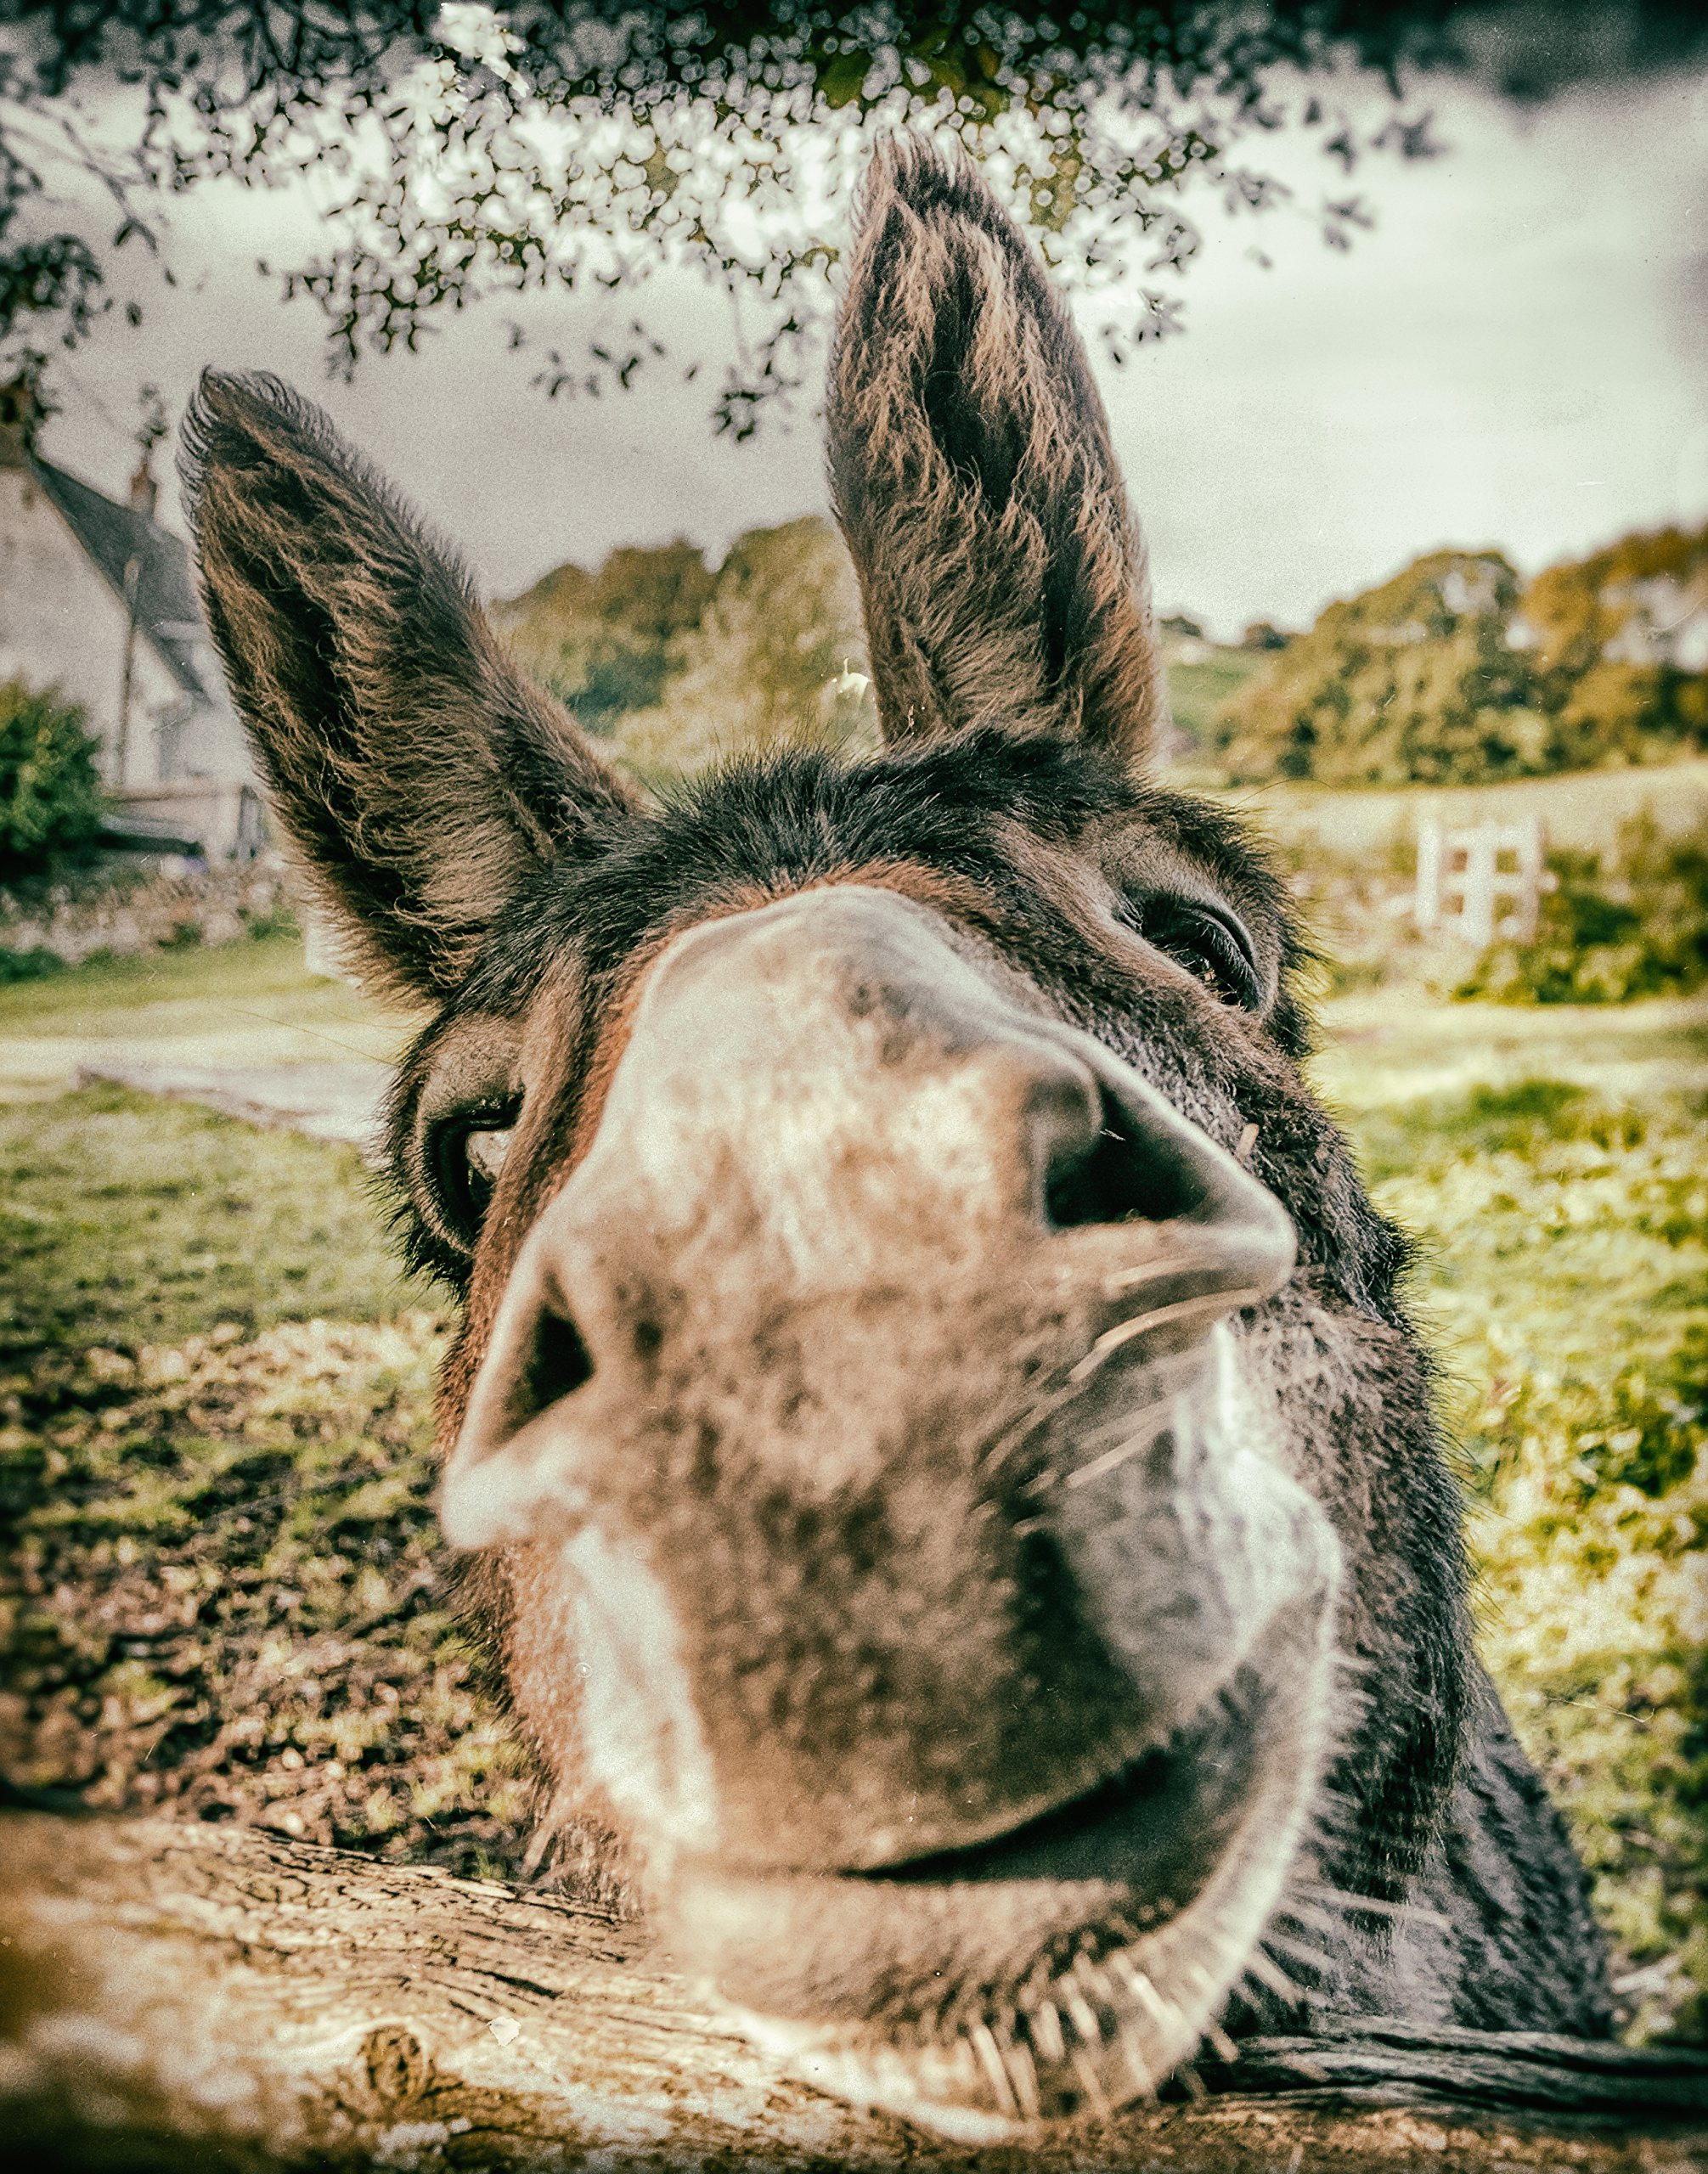 Donkey close up, quirky fun animal photographic print, donkey lover wall art gift